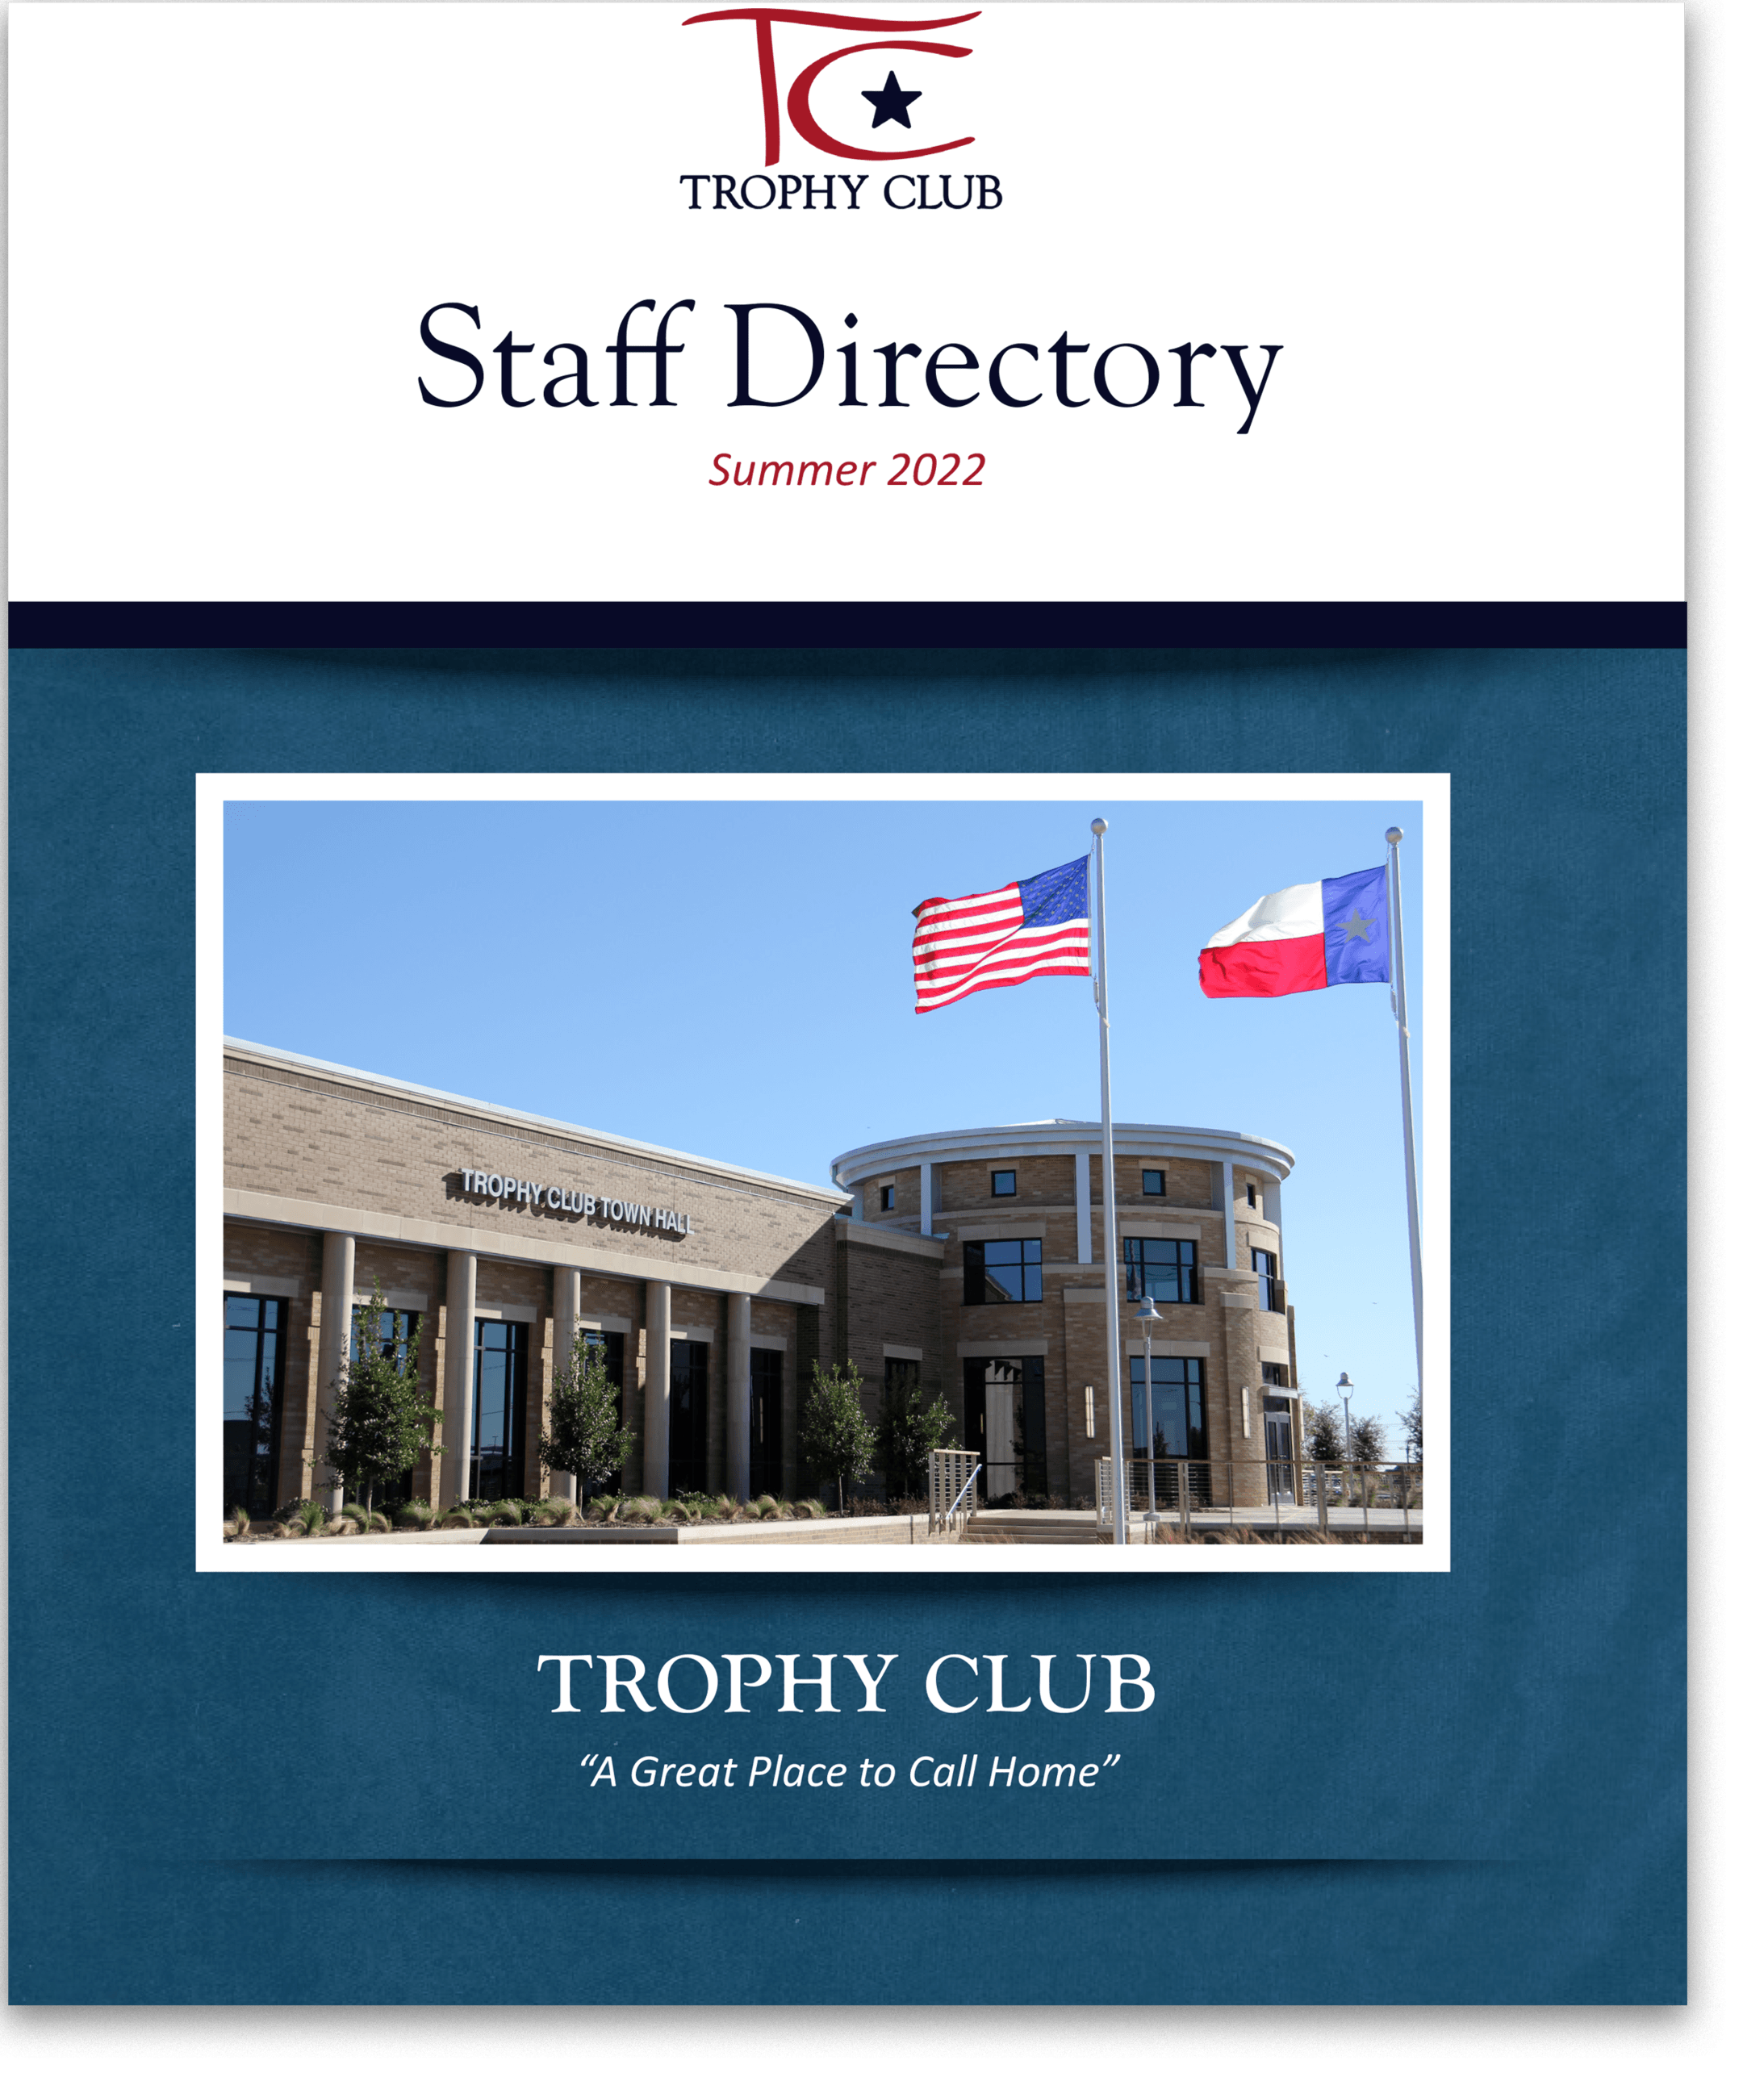 Trophy Club Staff Directory Org Chart w Texture- Spring 2019